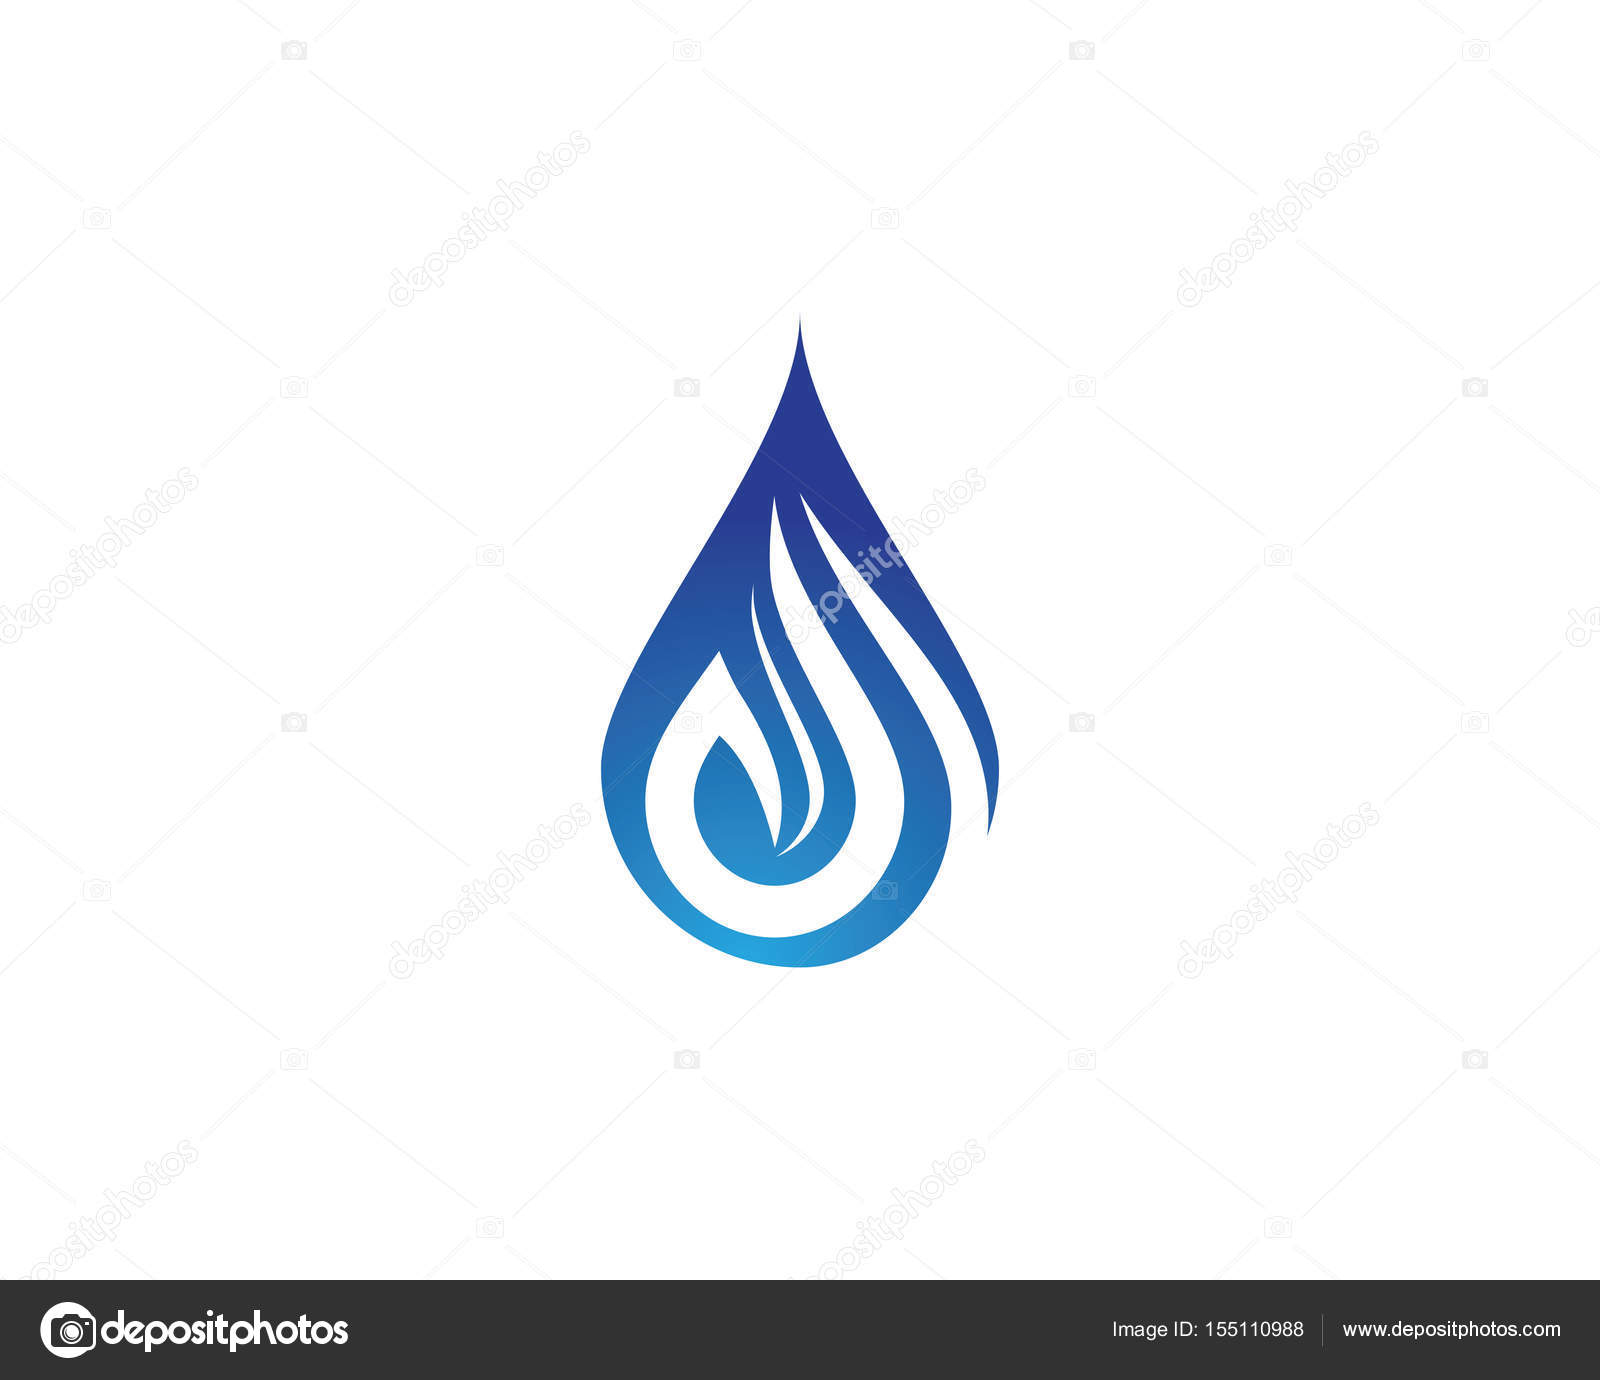 Water drops logo and symbols stock vector elaelo 155110988 water drops logo and symbols stock vector biocorpaavc Image collections